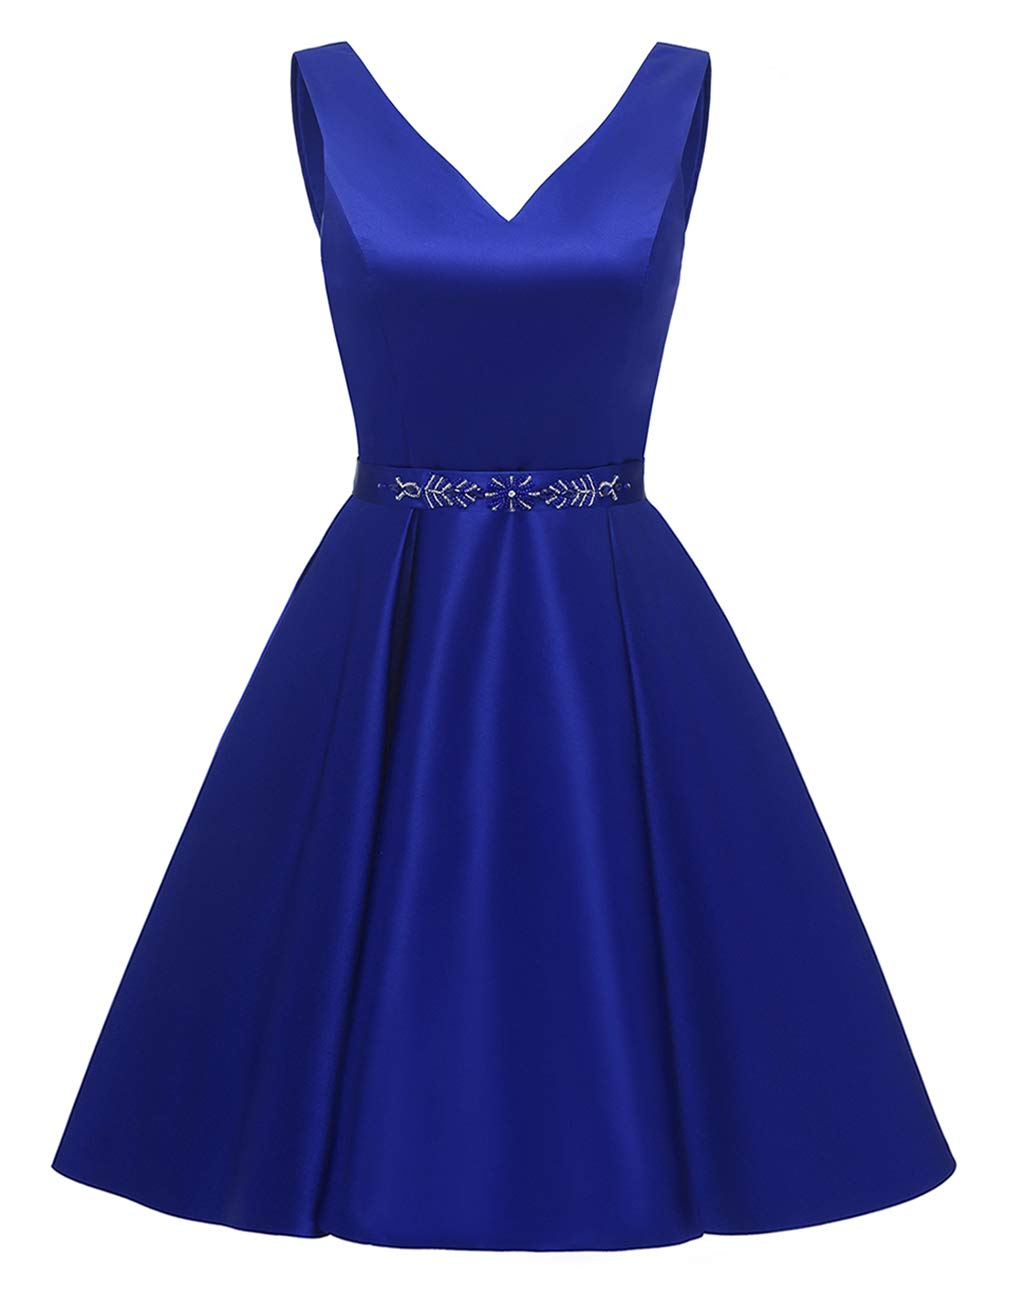 yinyyinhs V Neck Short Homcoming Prom Dresses Beaded Satin Cocktail Party Dress